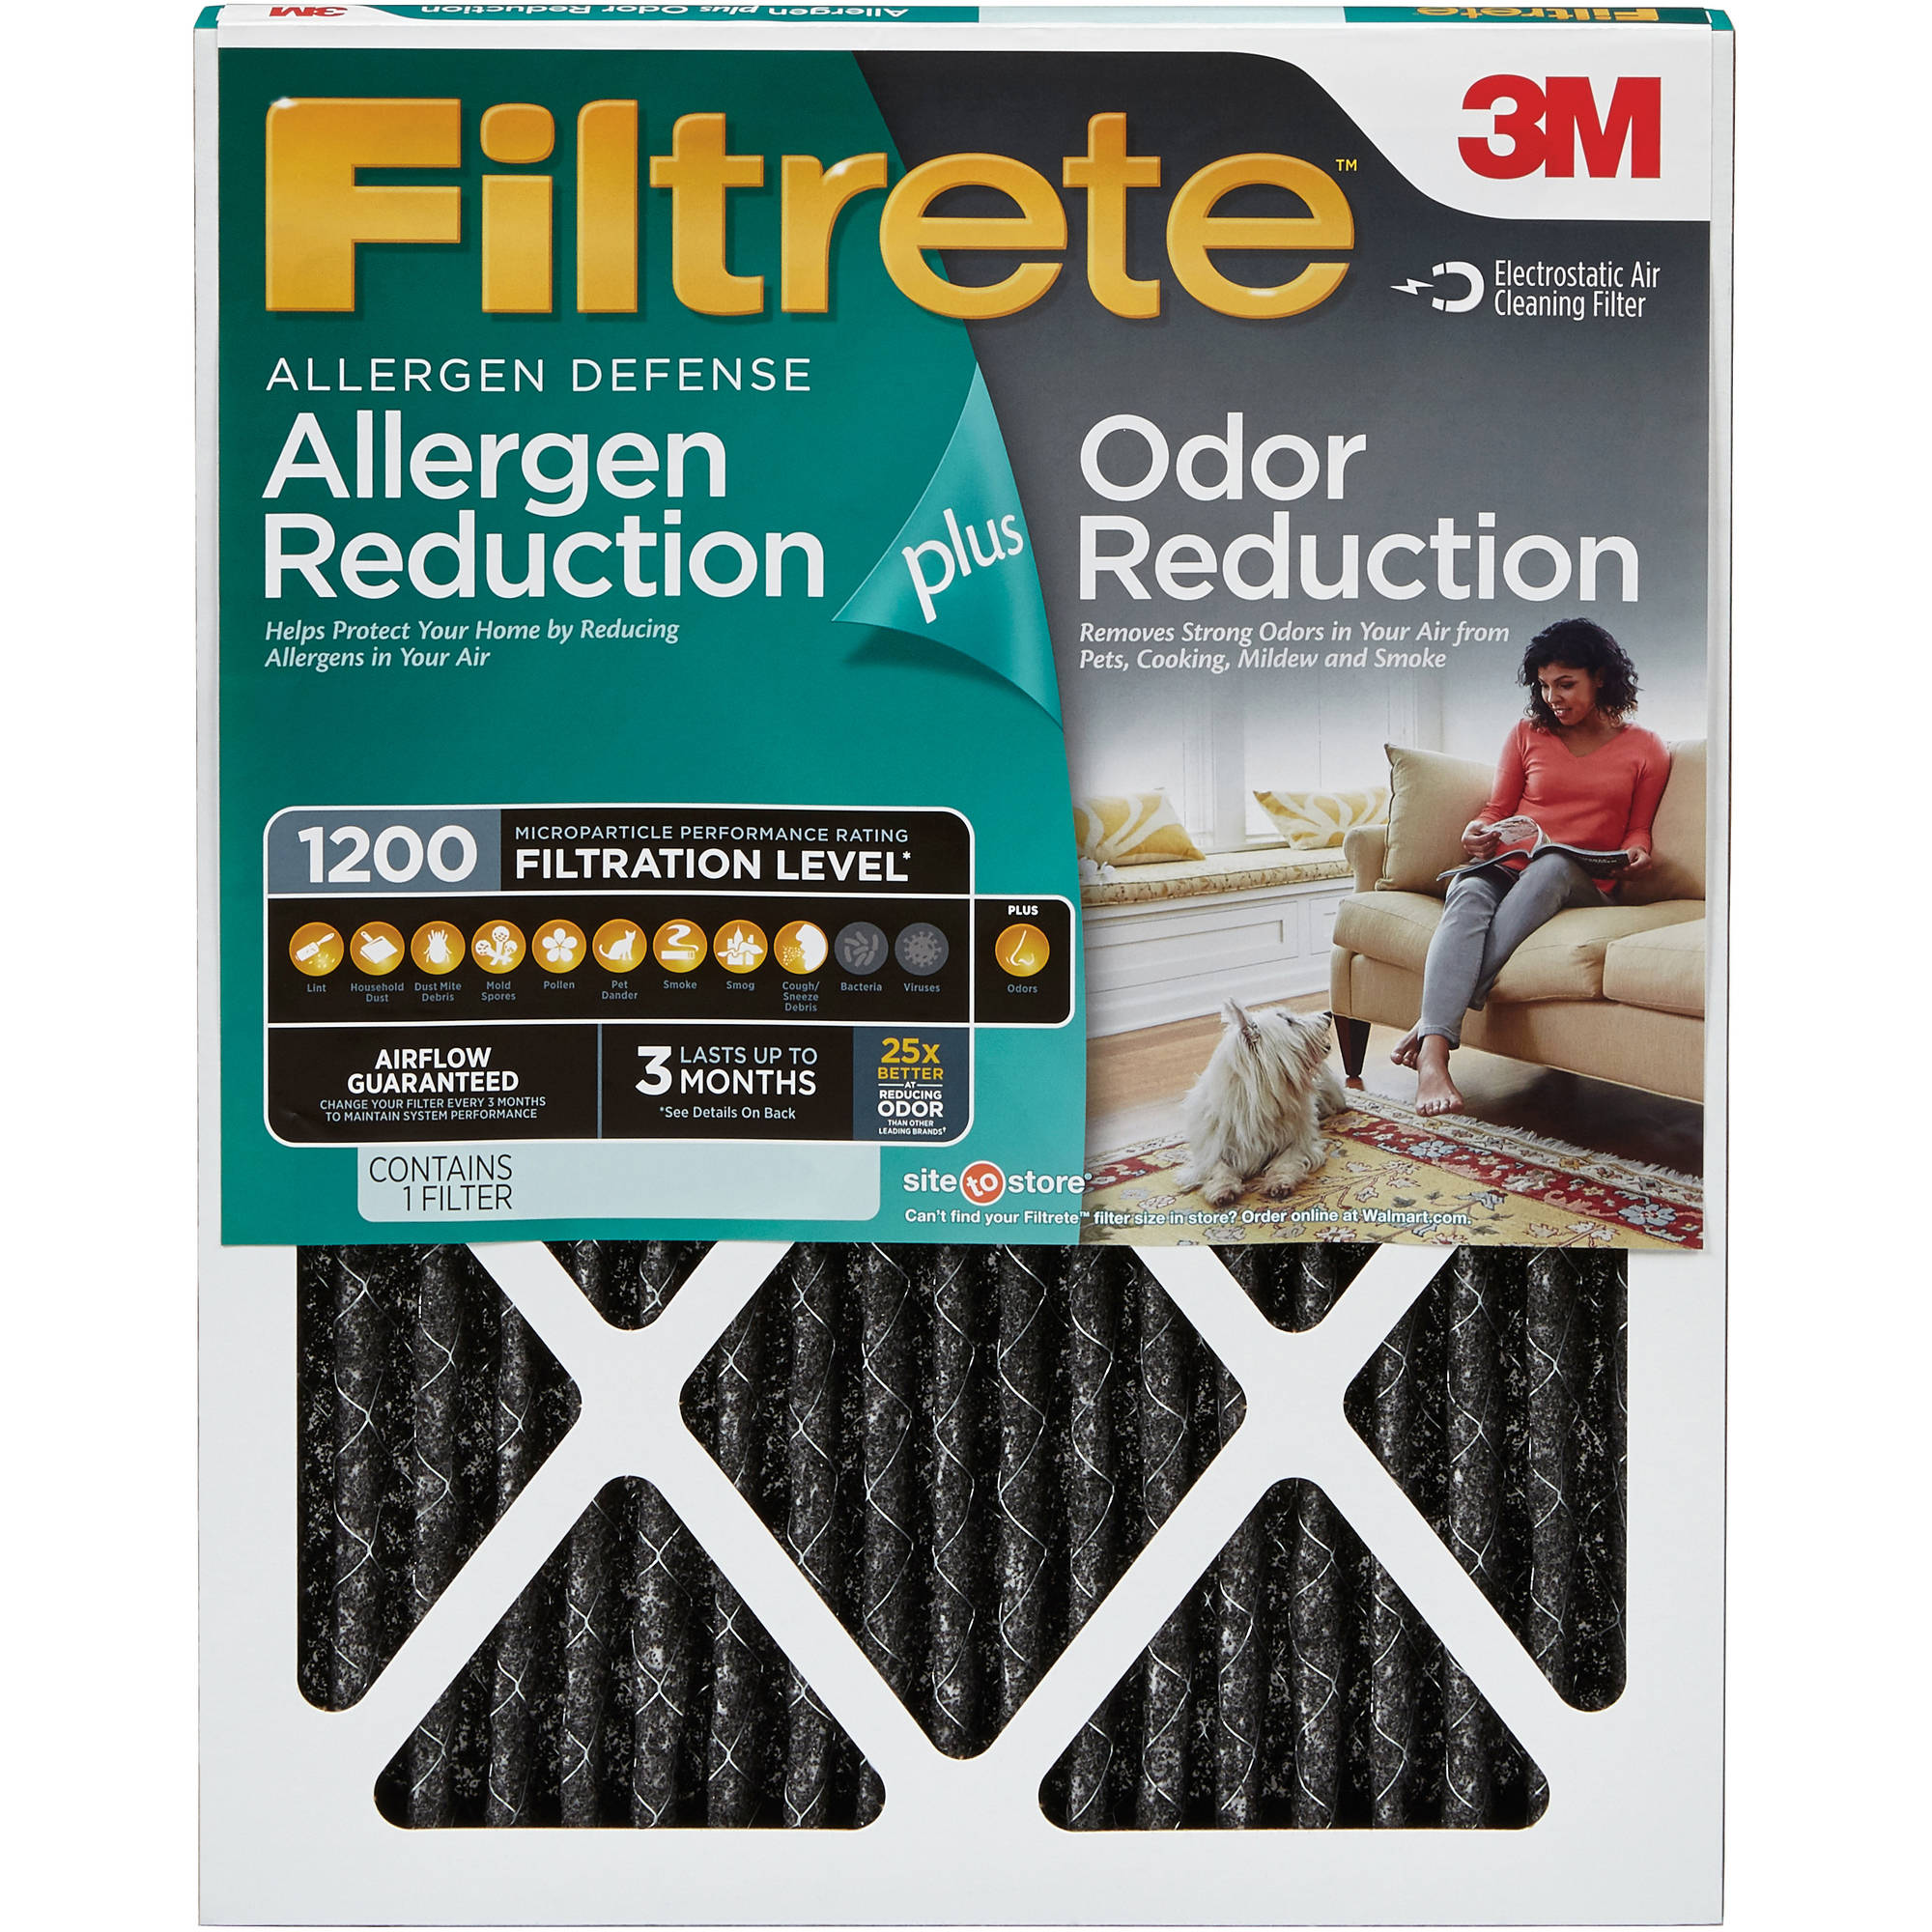 Filtrete Allergen Plus Odor Reduction HVAC Furnace Air Filter, 1200 MPR, 18 x 30 x 1, 1 Filter